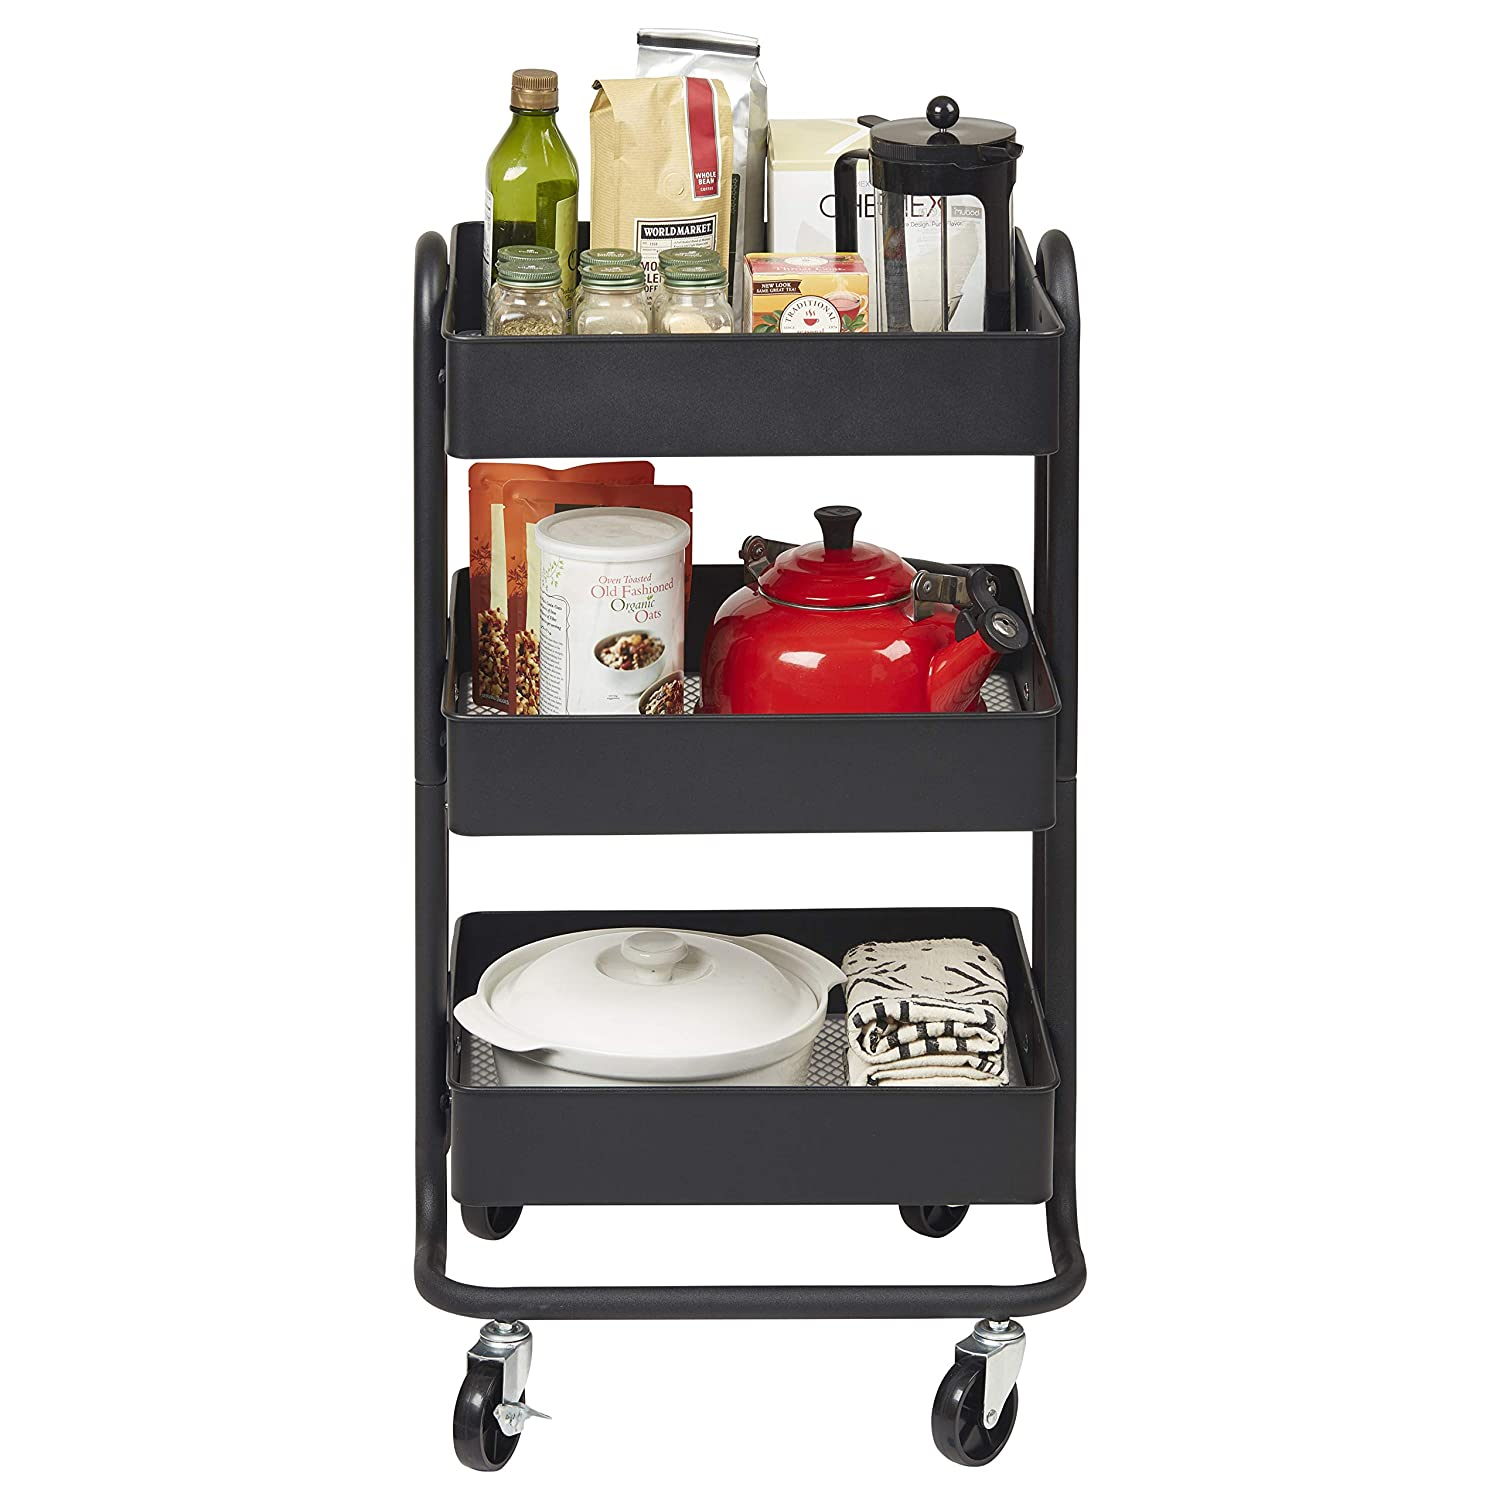 ECR4Kids 3-Tier Metal Rolling Utility Cart, Heavy-Duty Mobile Storage Organizer With Casters, Office Organization, Kitchen Storage, Classroom Cart, Beauty Cart, Coffee Cart, Mobile Library Cart